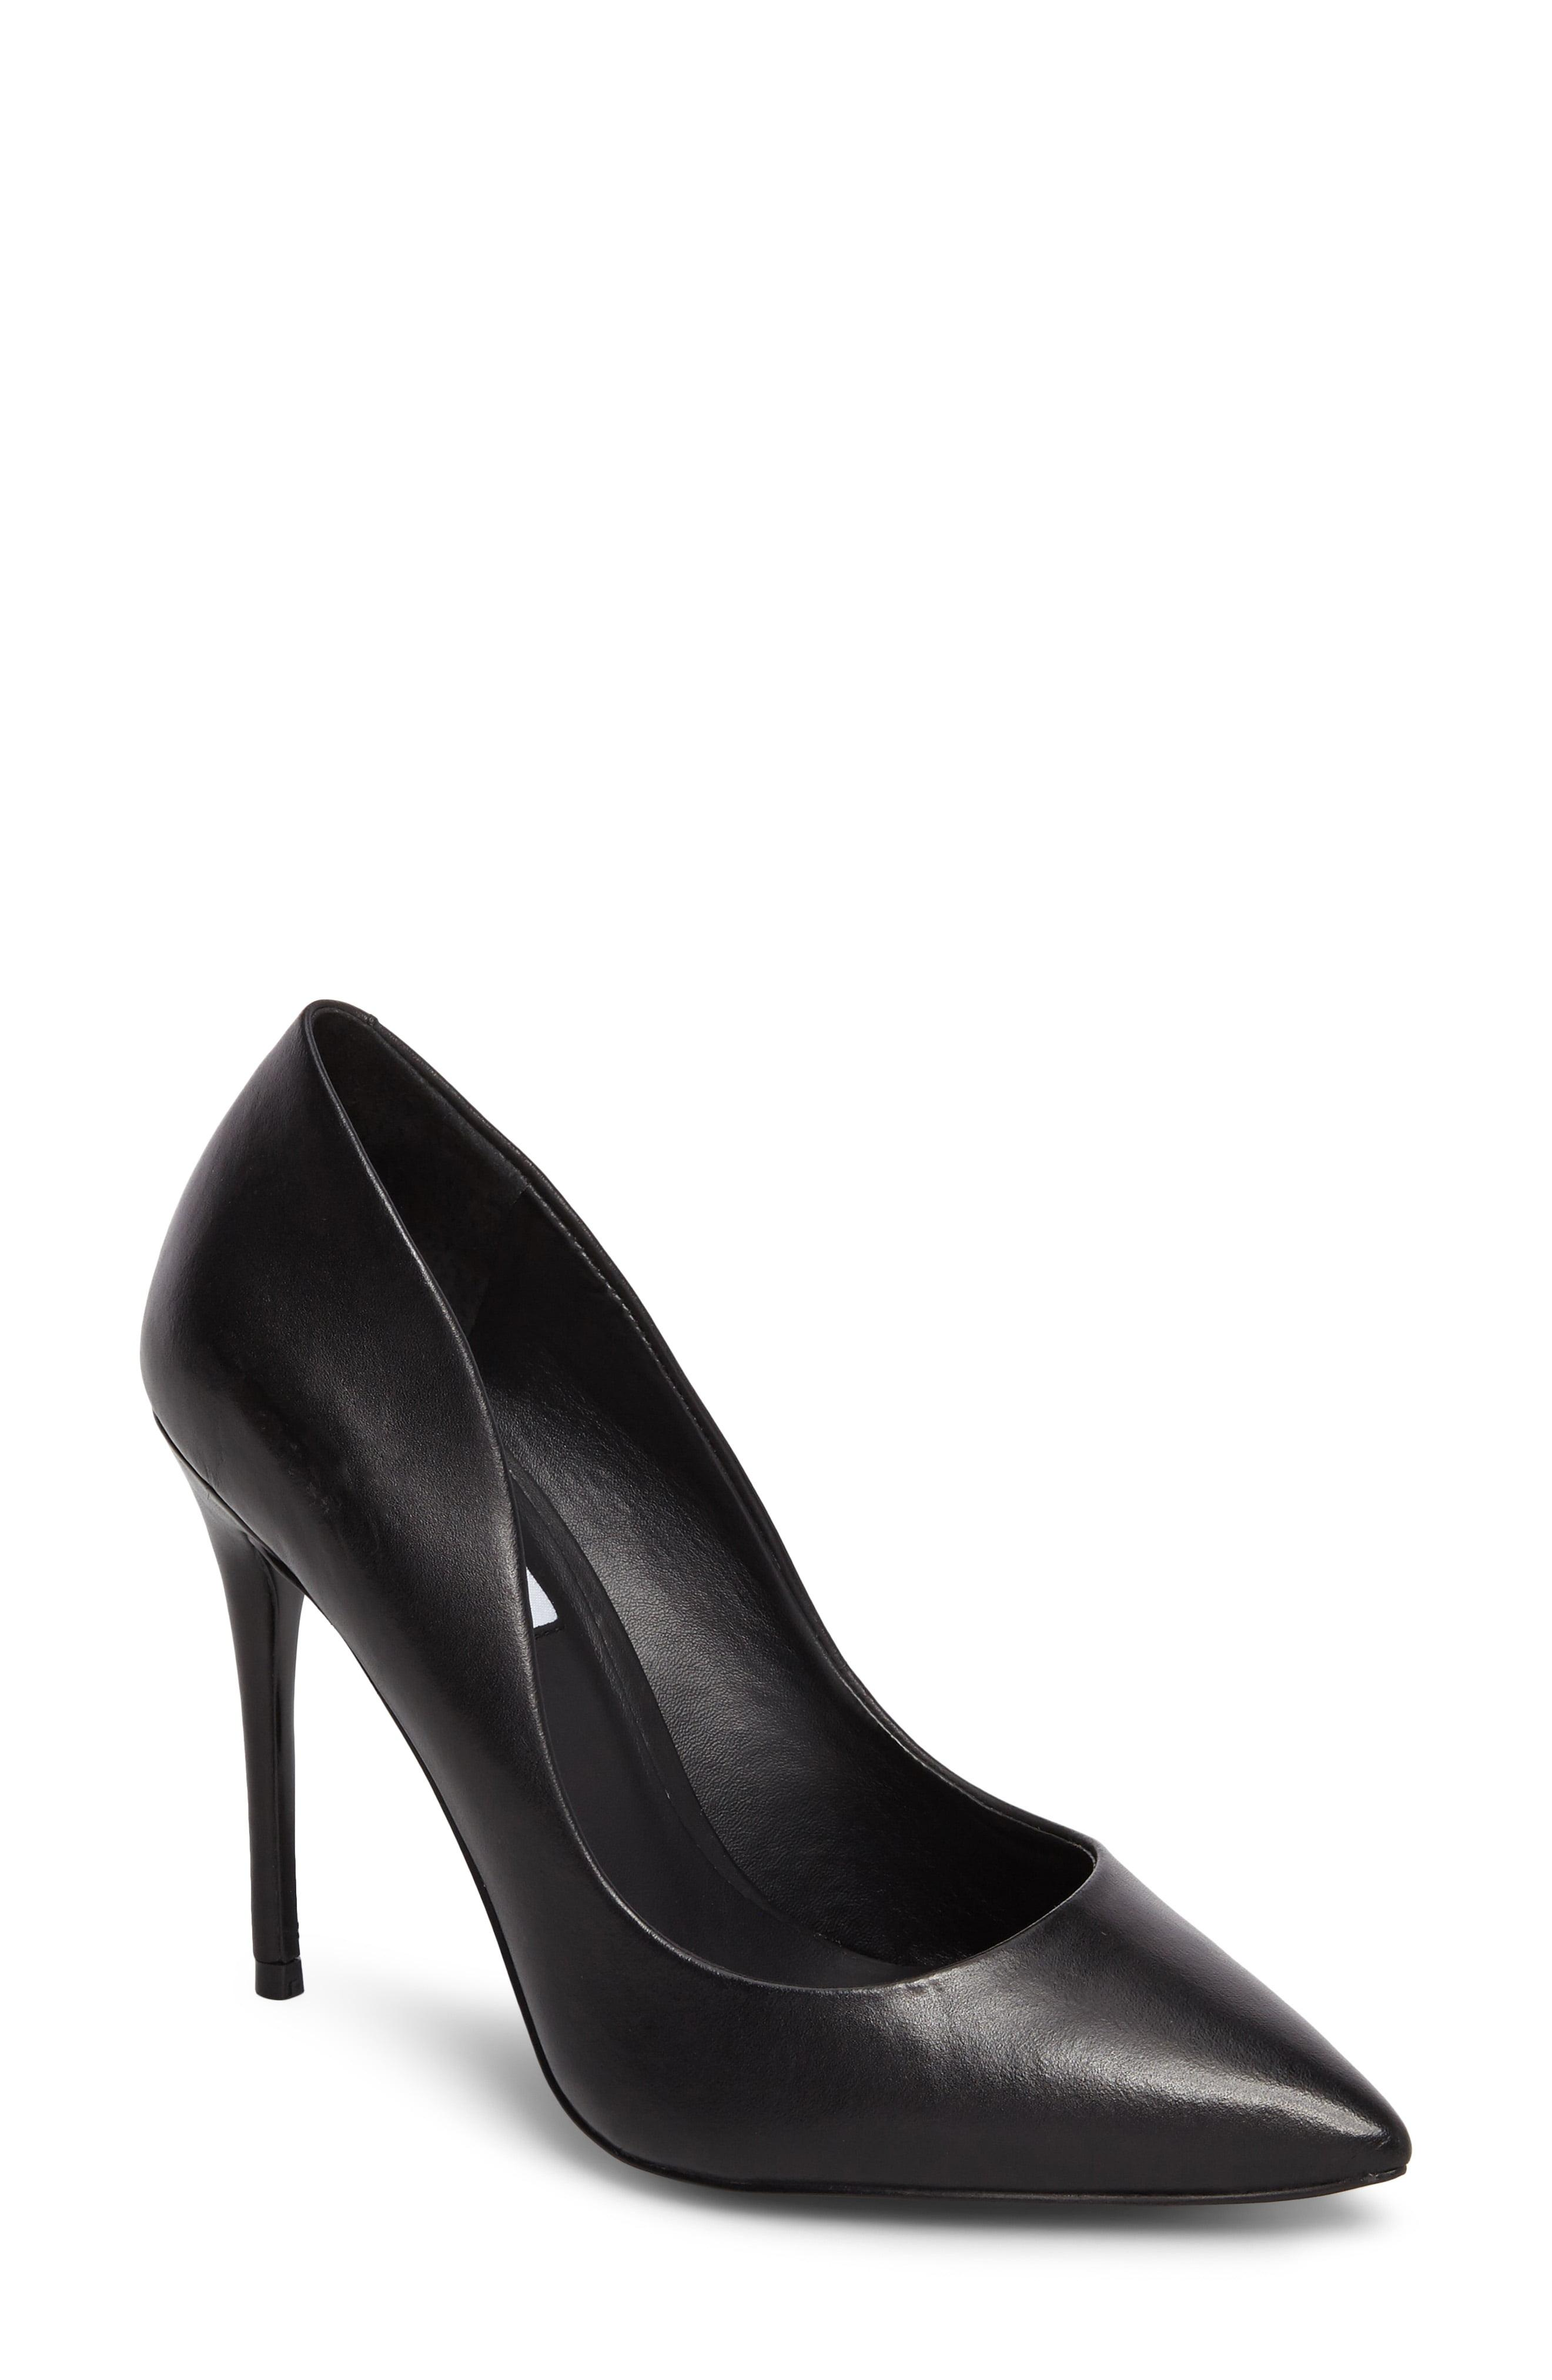 139f775fee5 Lyst - Steve Madden Daisie Pointy-toe Pump in Red - Save 61%